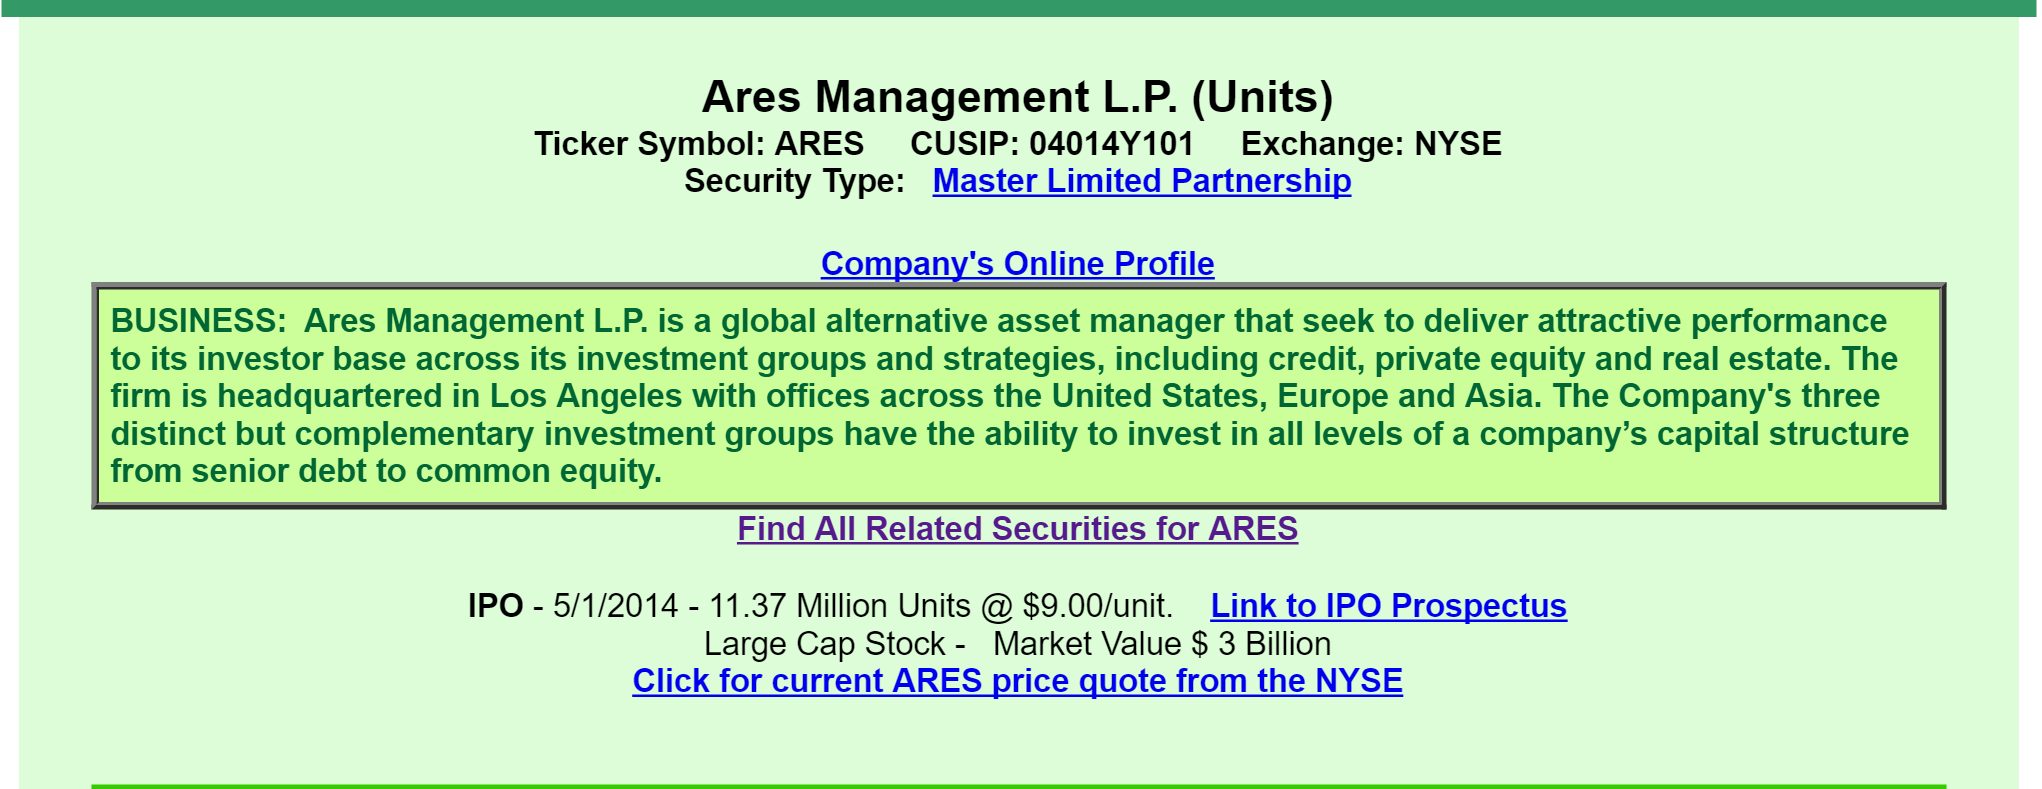 Ares management viewed through the eyes of a preferred investor a quick review informs us that ares is a master limited partnership mlp and functions as an asset manager of private equity credit and real estate buycottarizona